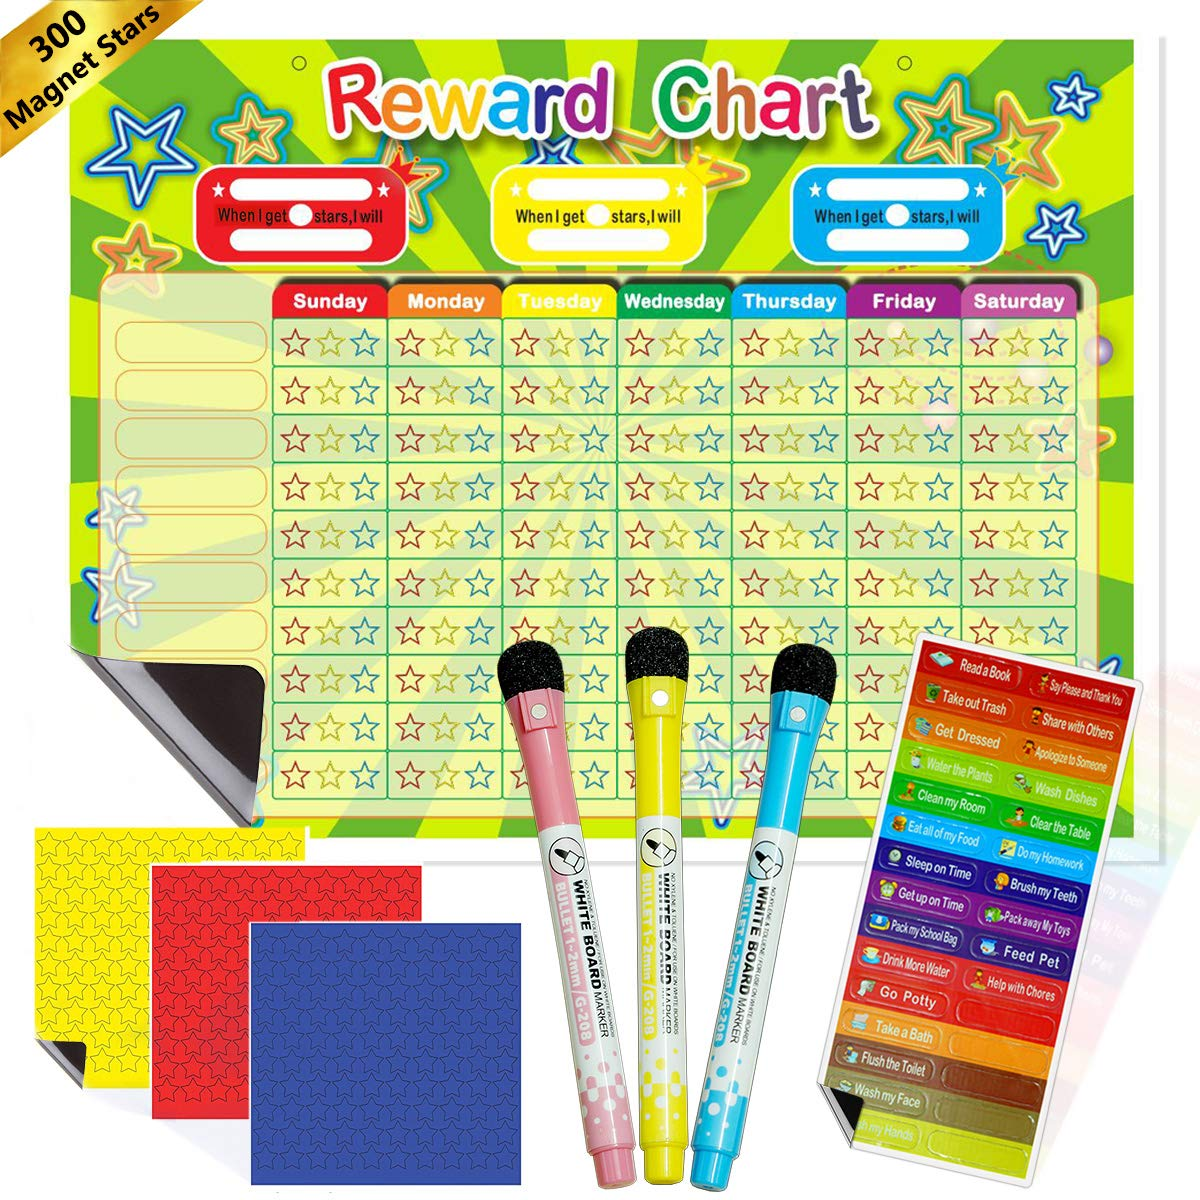 New ideas Rewards Chore Chart for Kids,Come with 30 Magnetic Chores,300 Magnetic Stars & 3 Color Dry Erase Markers,Magnetic Backing & Hanging Loop for Wall, Rigid Board Dry Erasable ( 16X12 inch)